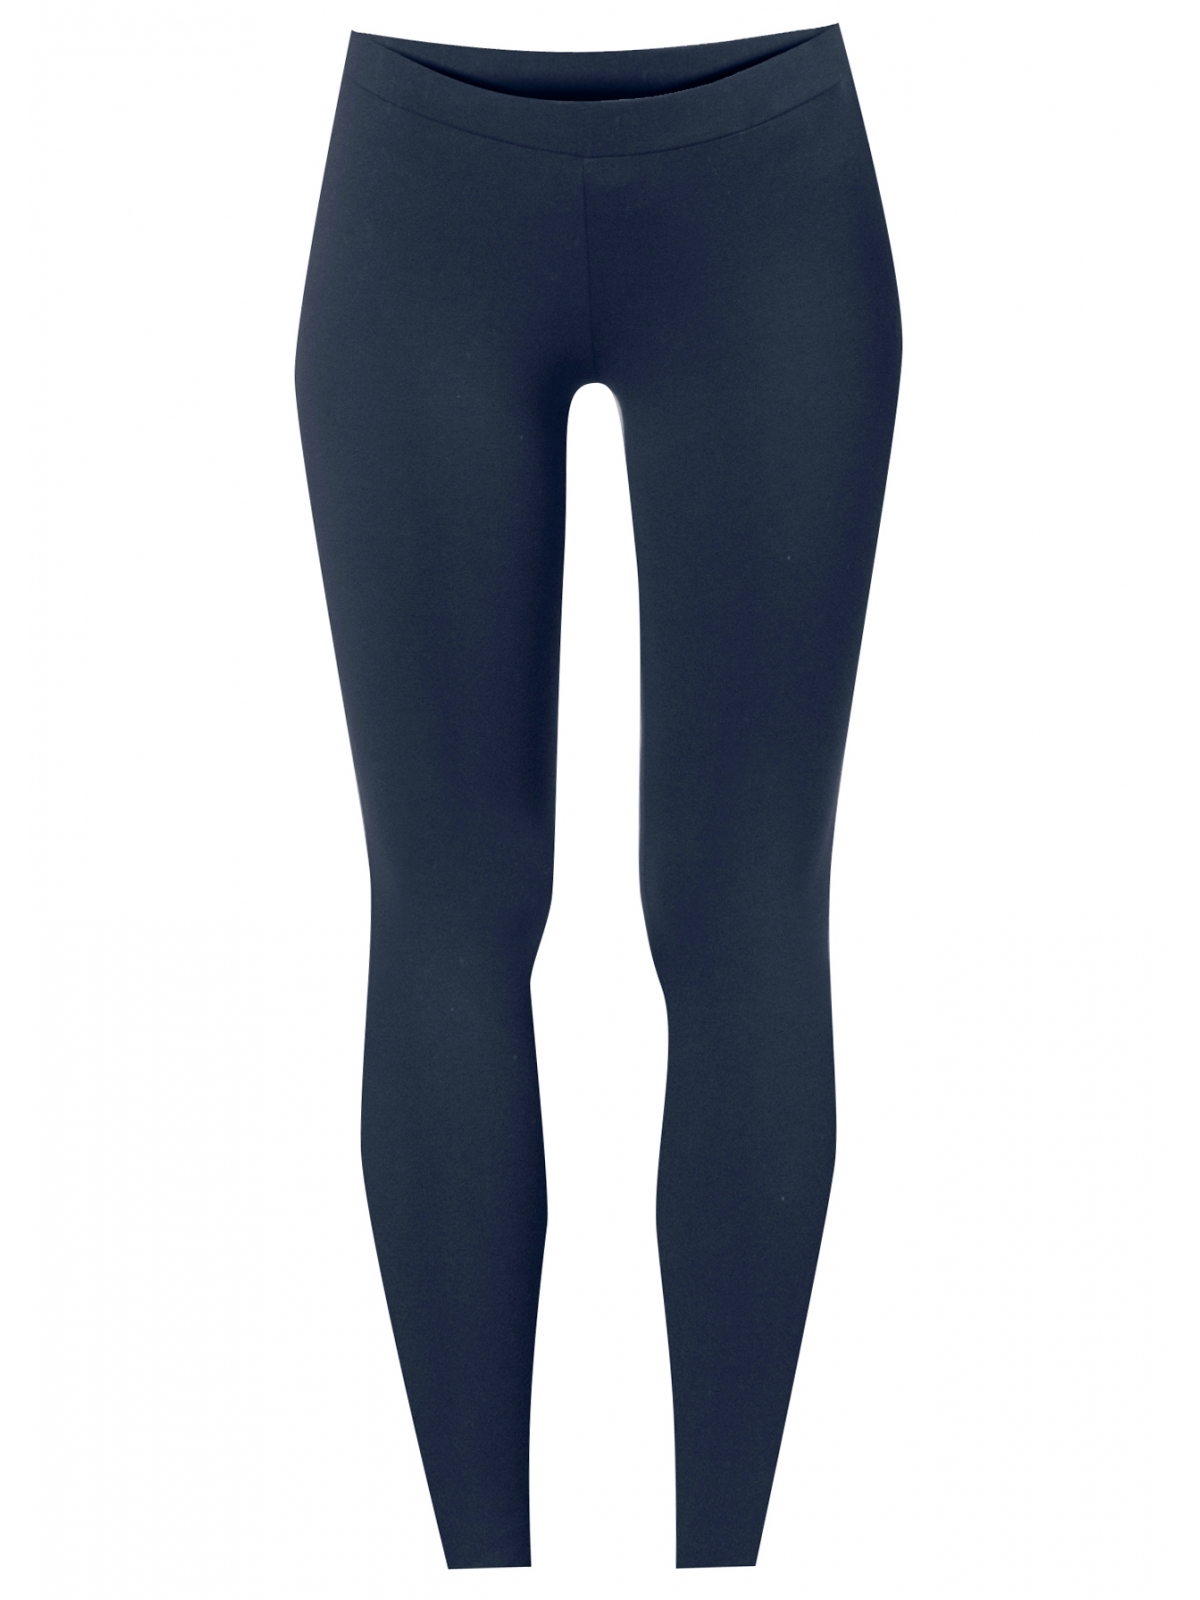 Yoga pants long en coton bio